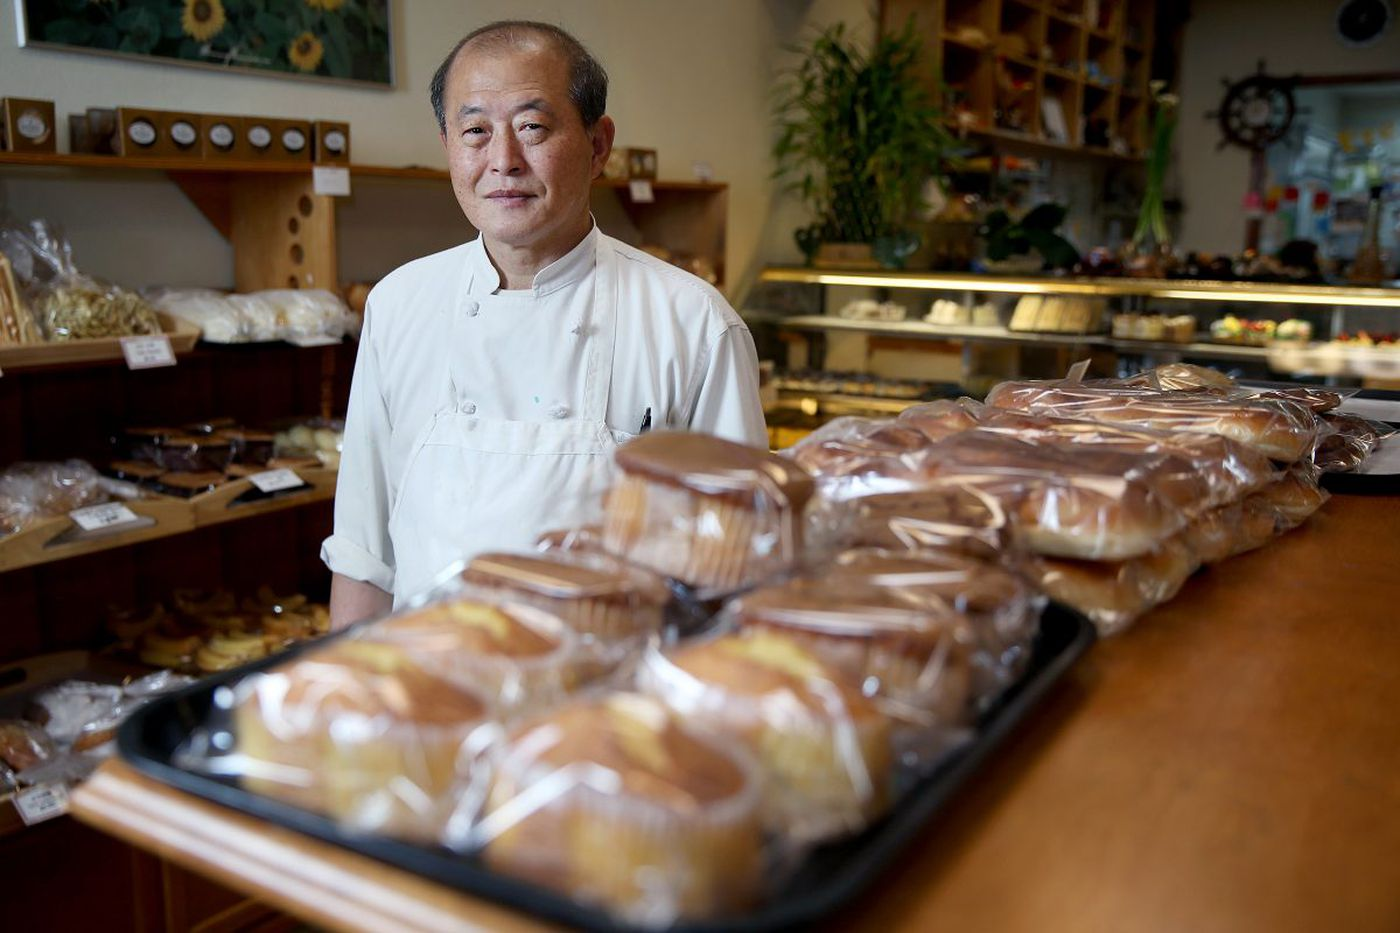 Meet the Asian immigrants behind some of Philly's favorite French bakeries